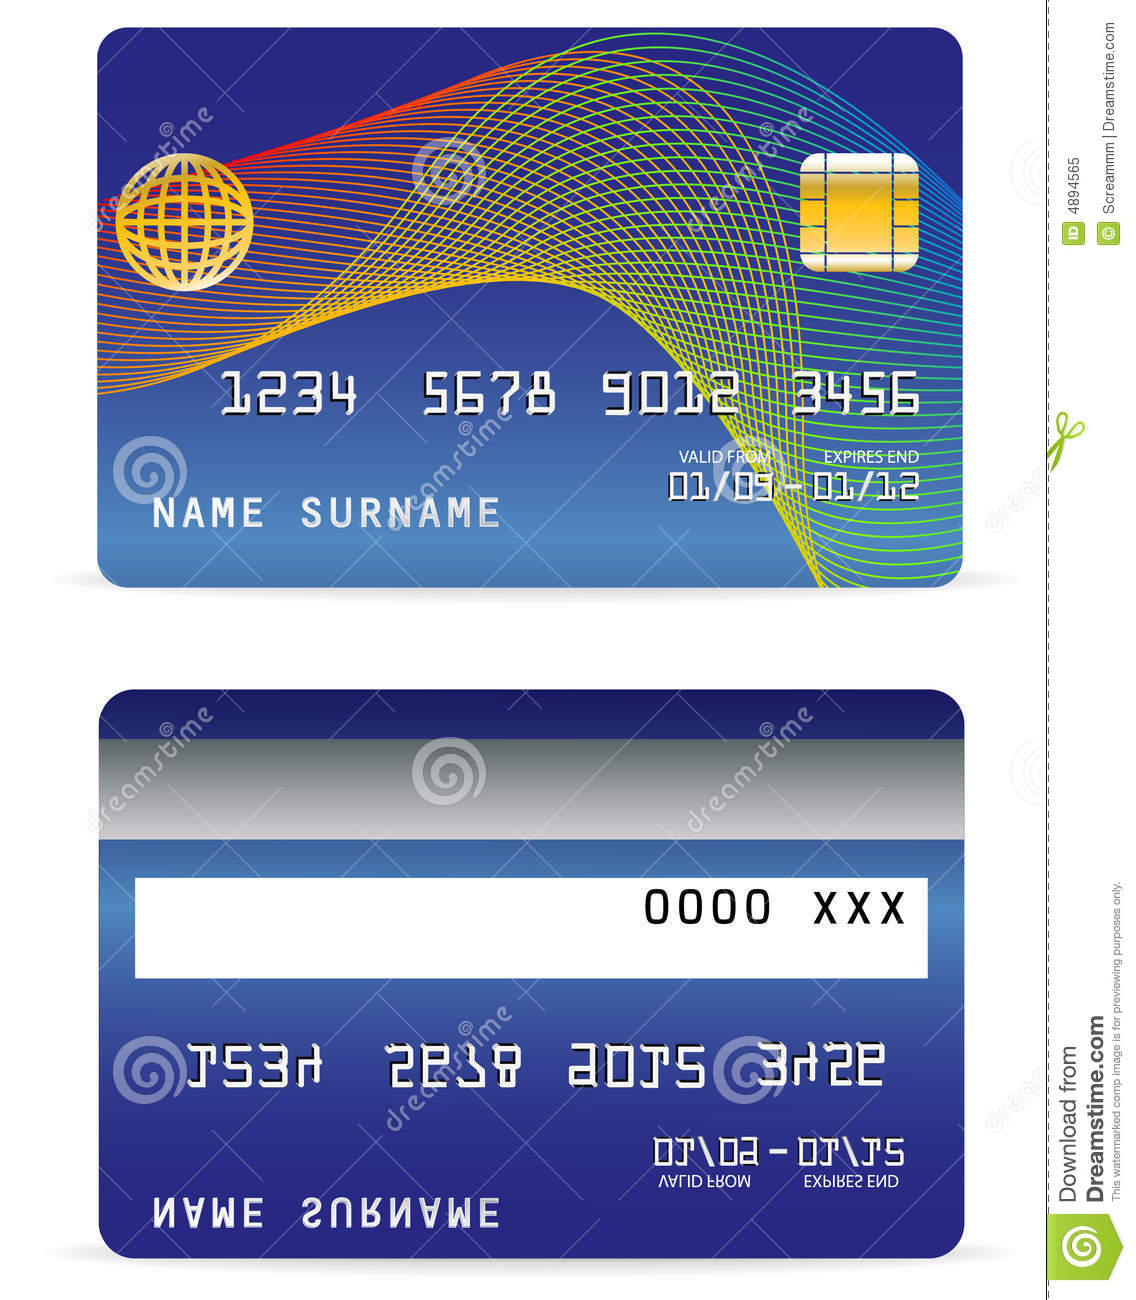 credit card on wave lines background stock vector